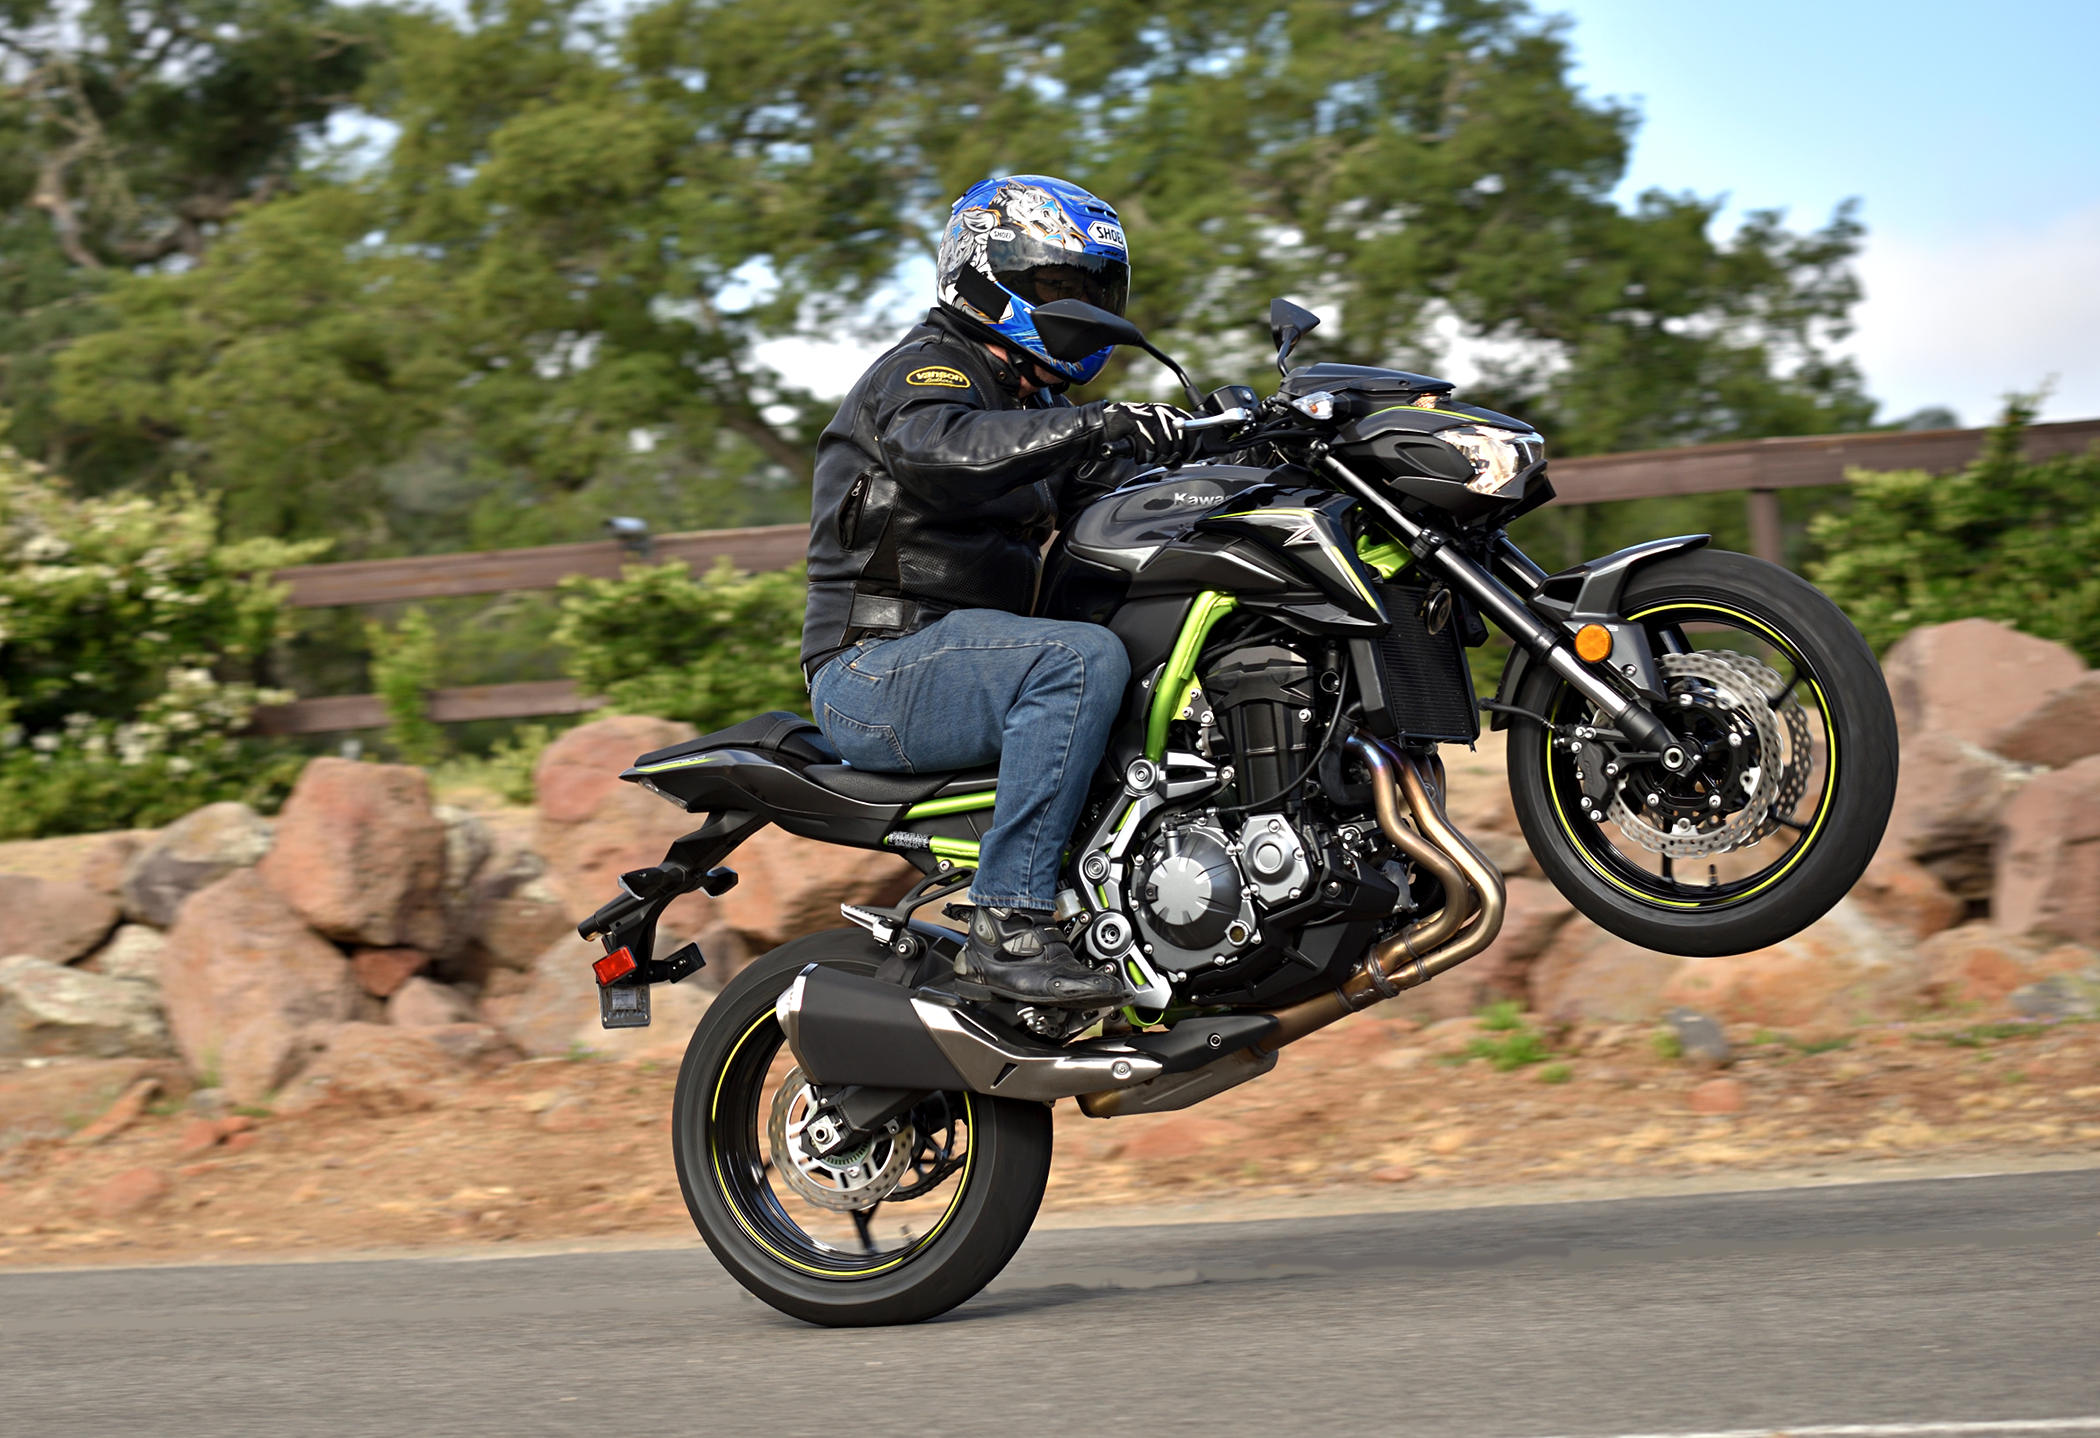 2017 Kawasaki Z900 ABS MD Ride Review